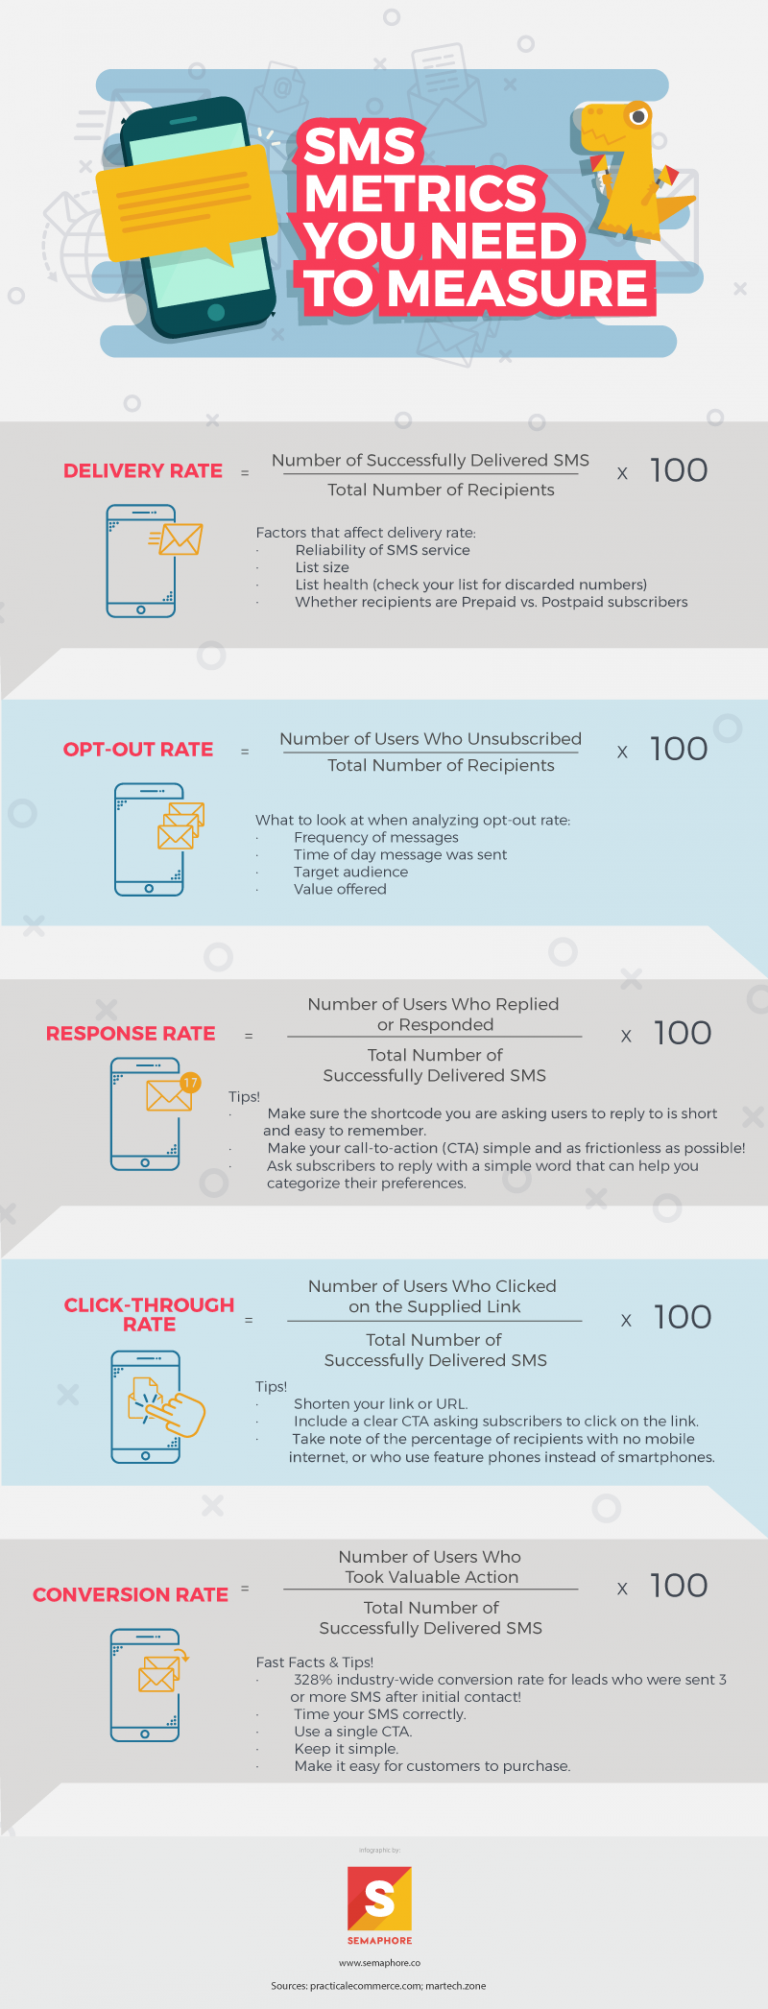 SMS Metrics You Need to Measure [Infographic]